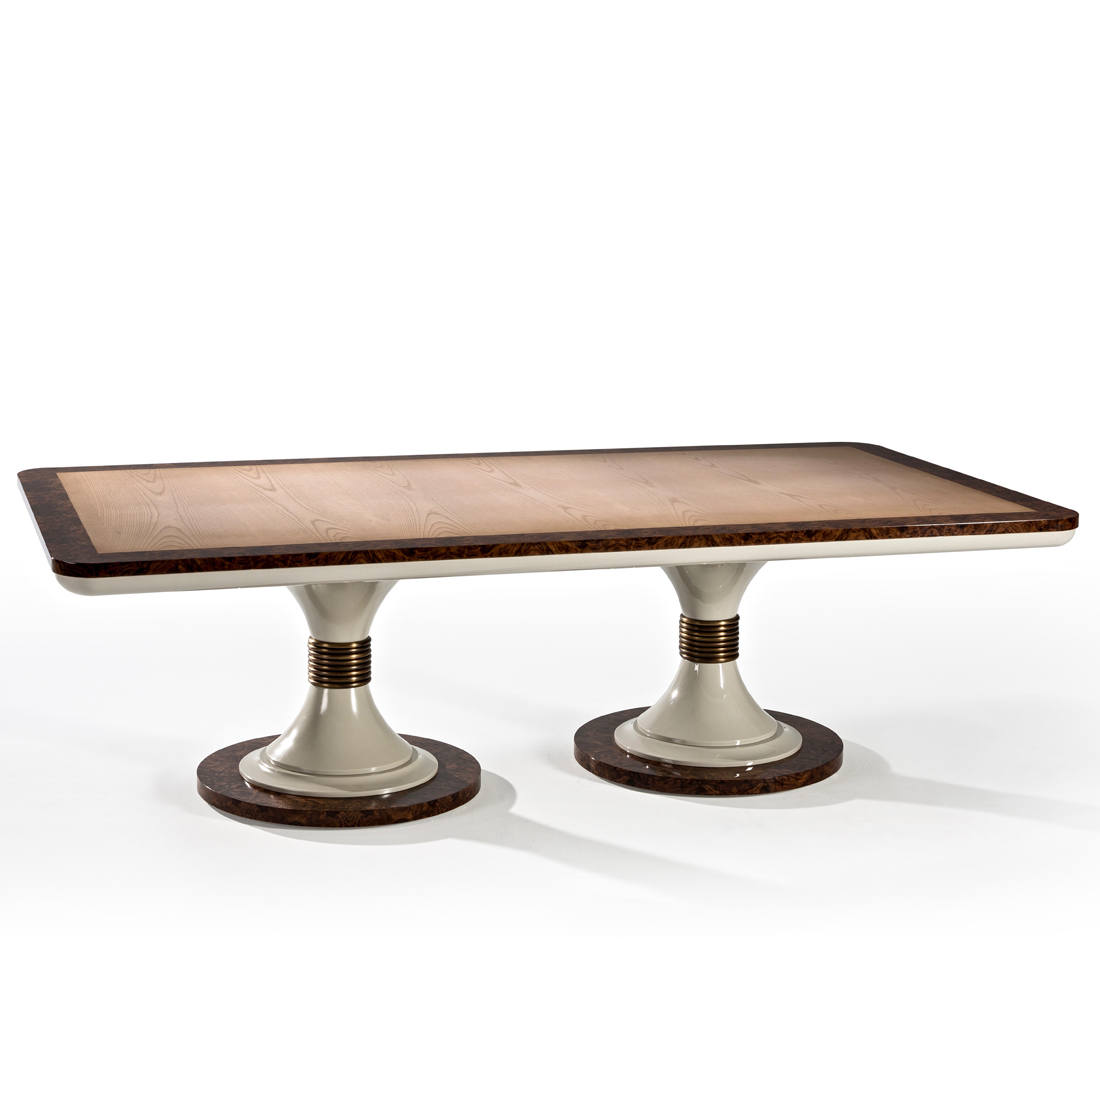 high end dining table, luxury dining table, contemporary dining table